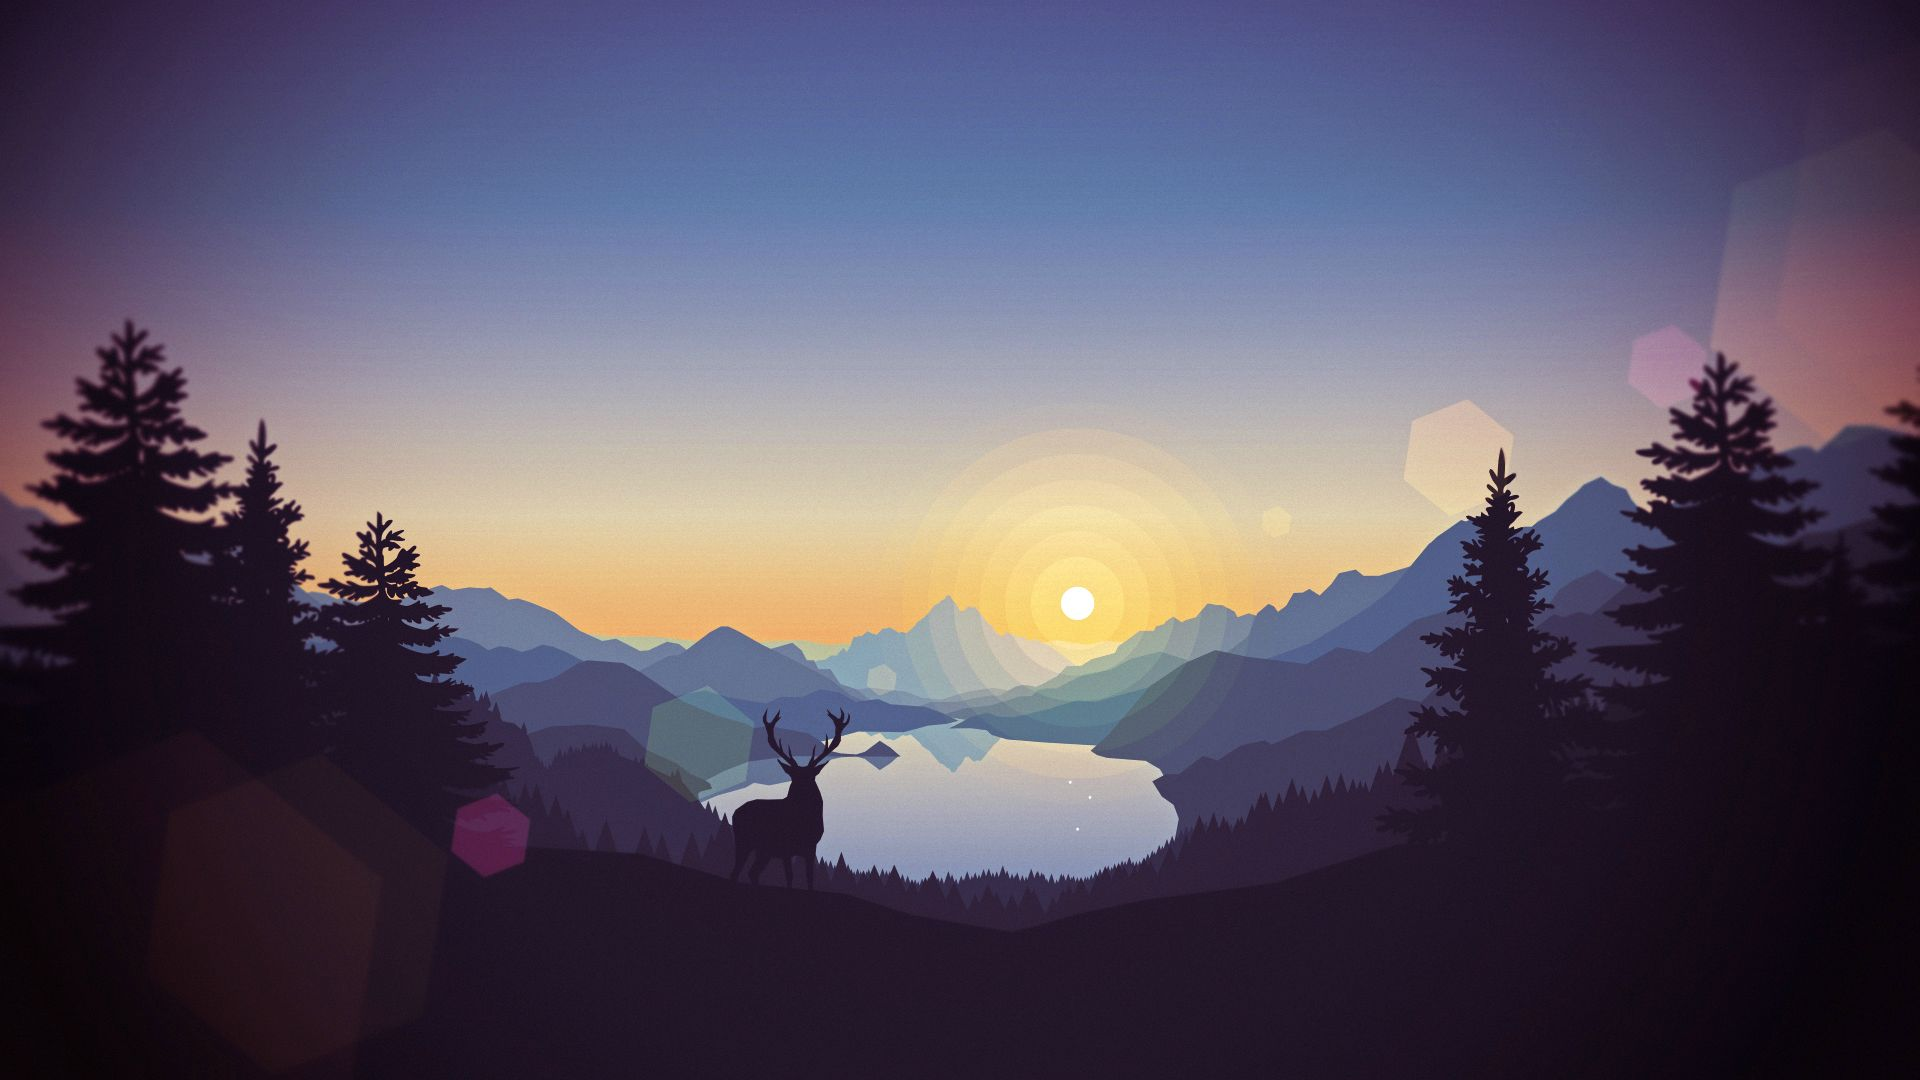 General 1920x1080 digital art landscape mountains sunset forest lagoon illustration deer